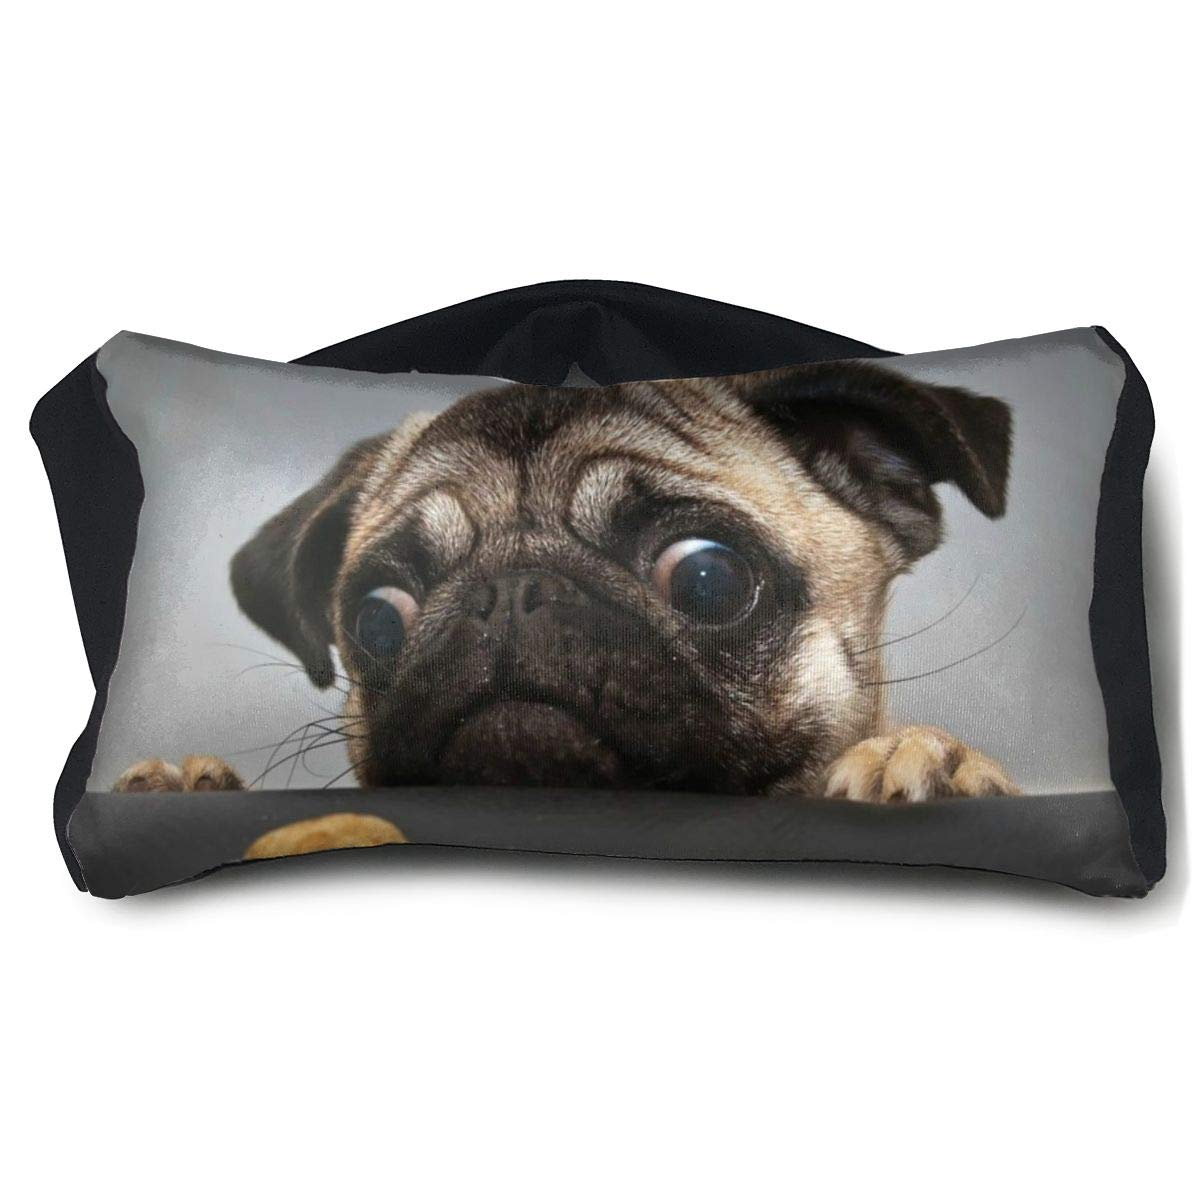 Funny Animal Bulldog Want to Eat Portable Eye Pillow, Multifunctional Neck Pillow and Sleep Eye Mask Travel Head Neck Cushion Airplane Flight Sleep for Trips Air Travel